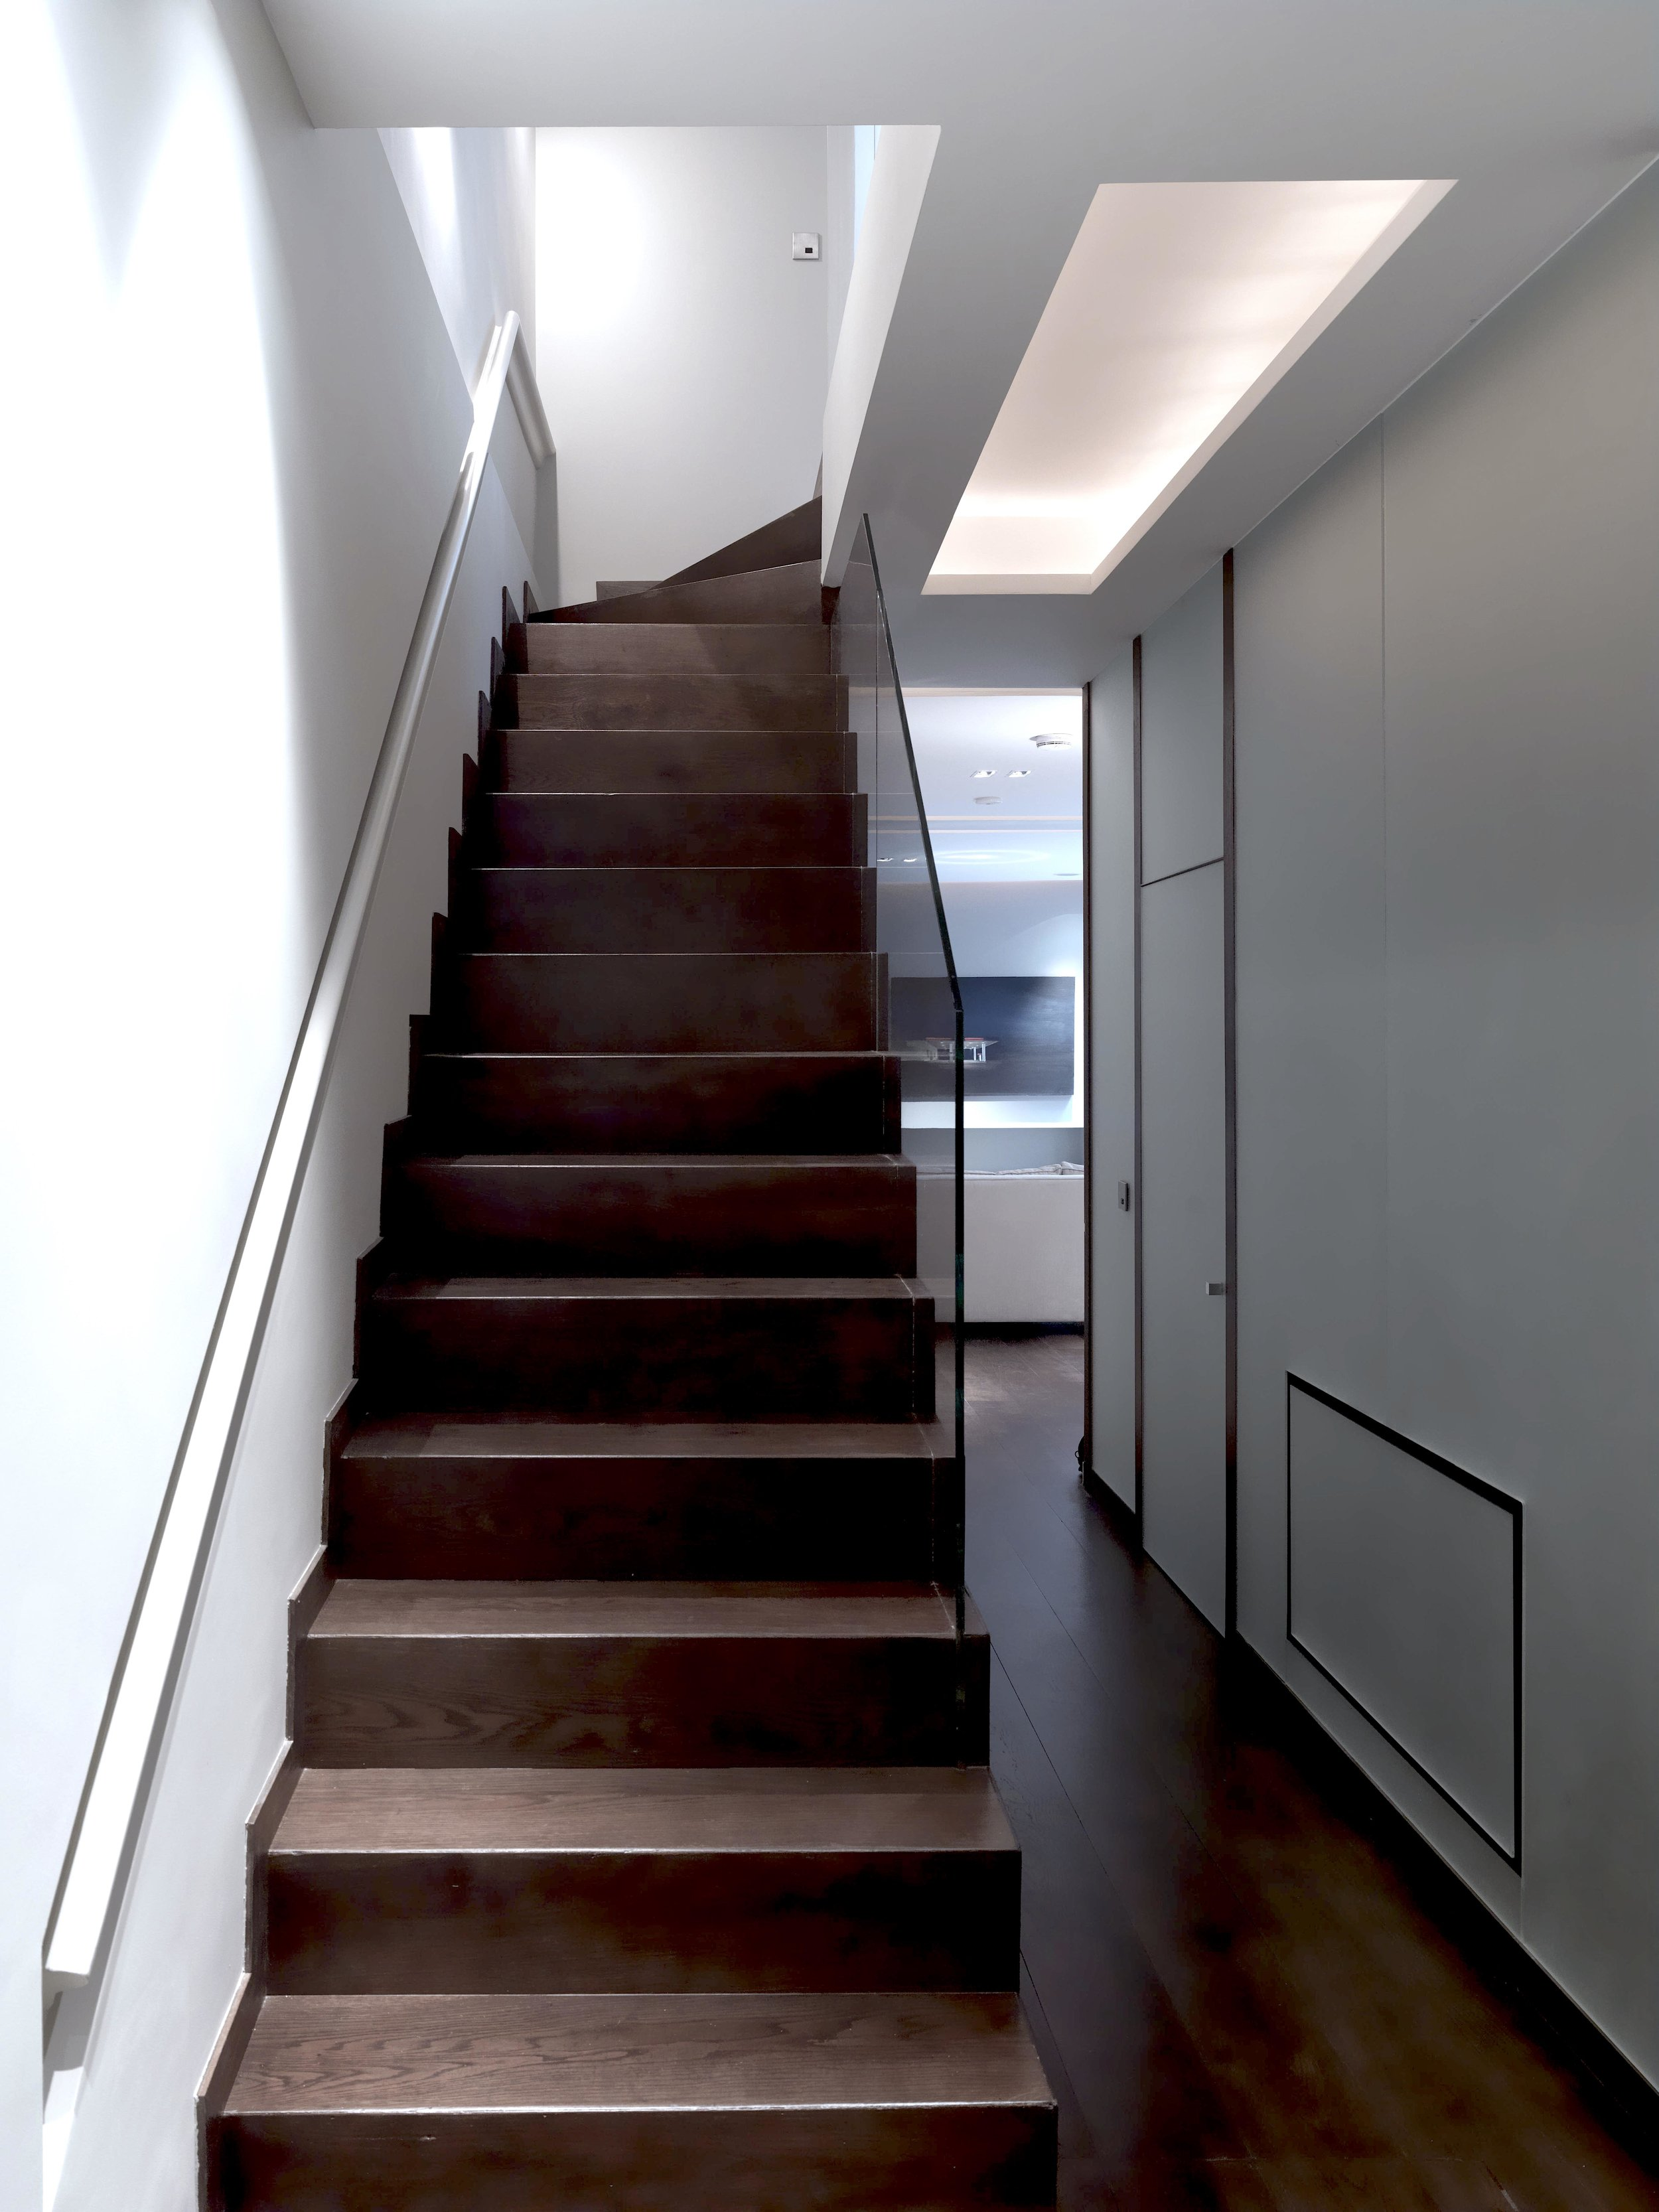 Stairs to Lower Ground Floor in more contemporary style, with sandblasted mirror wall to reflect light, with ceiling light details